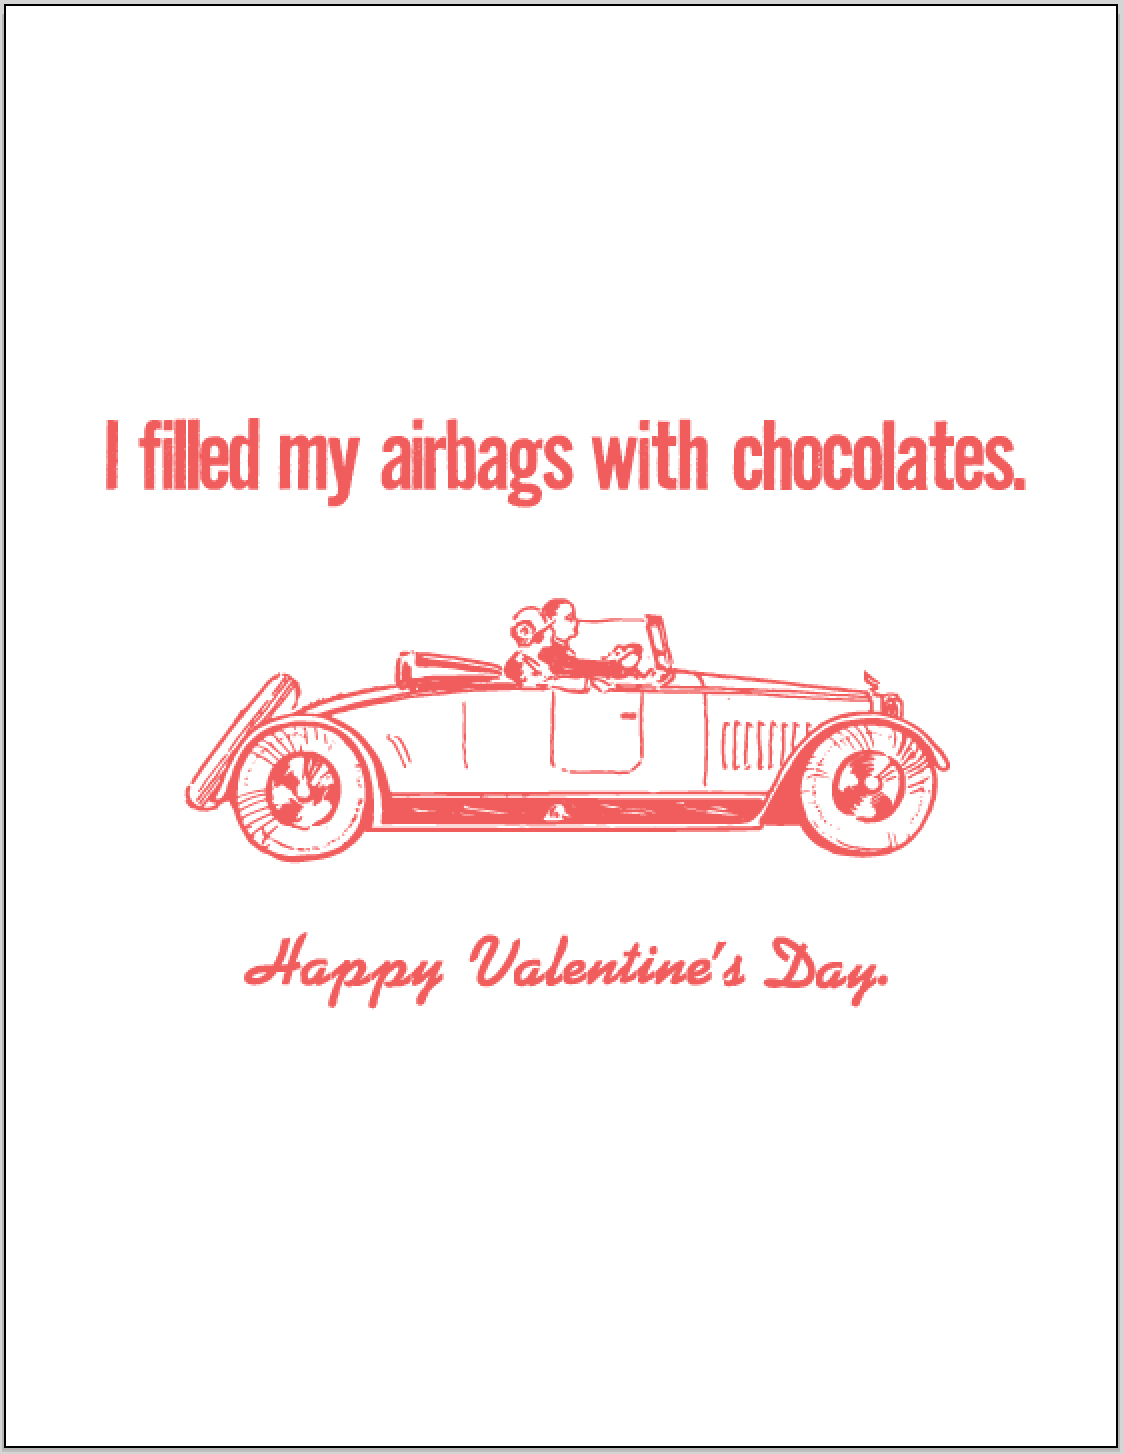 airbags with chocolates